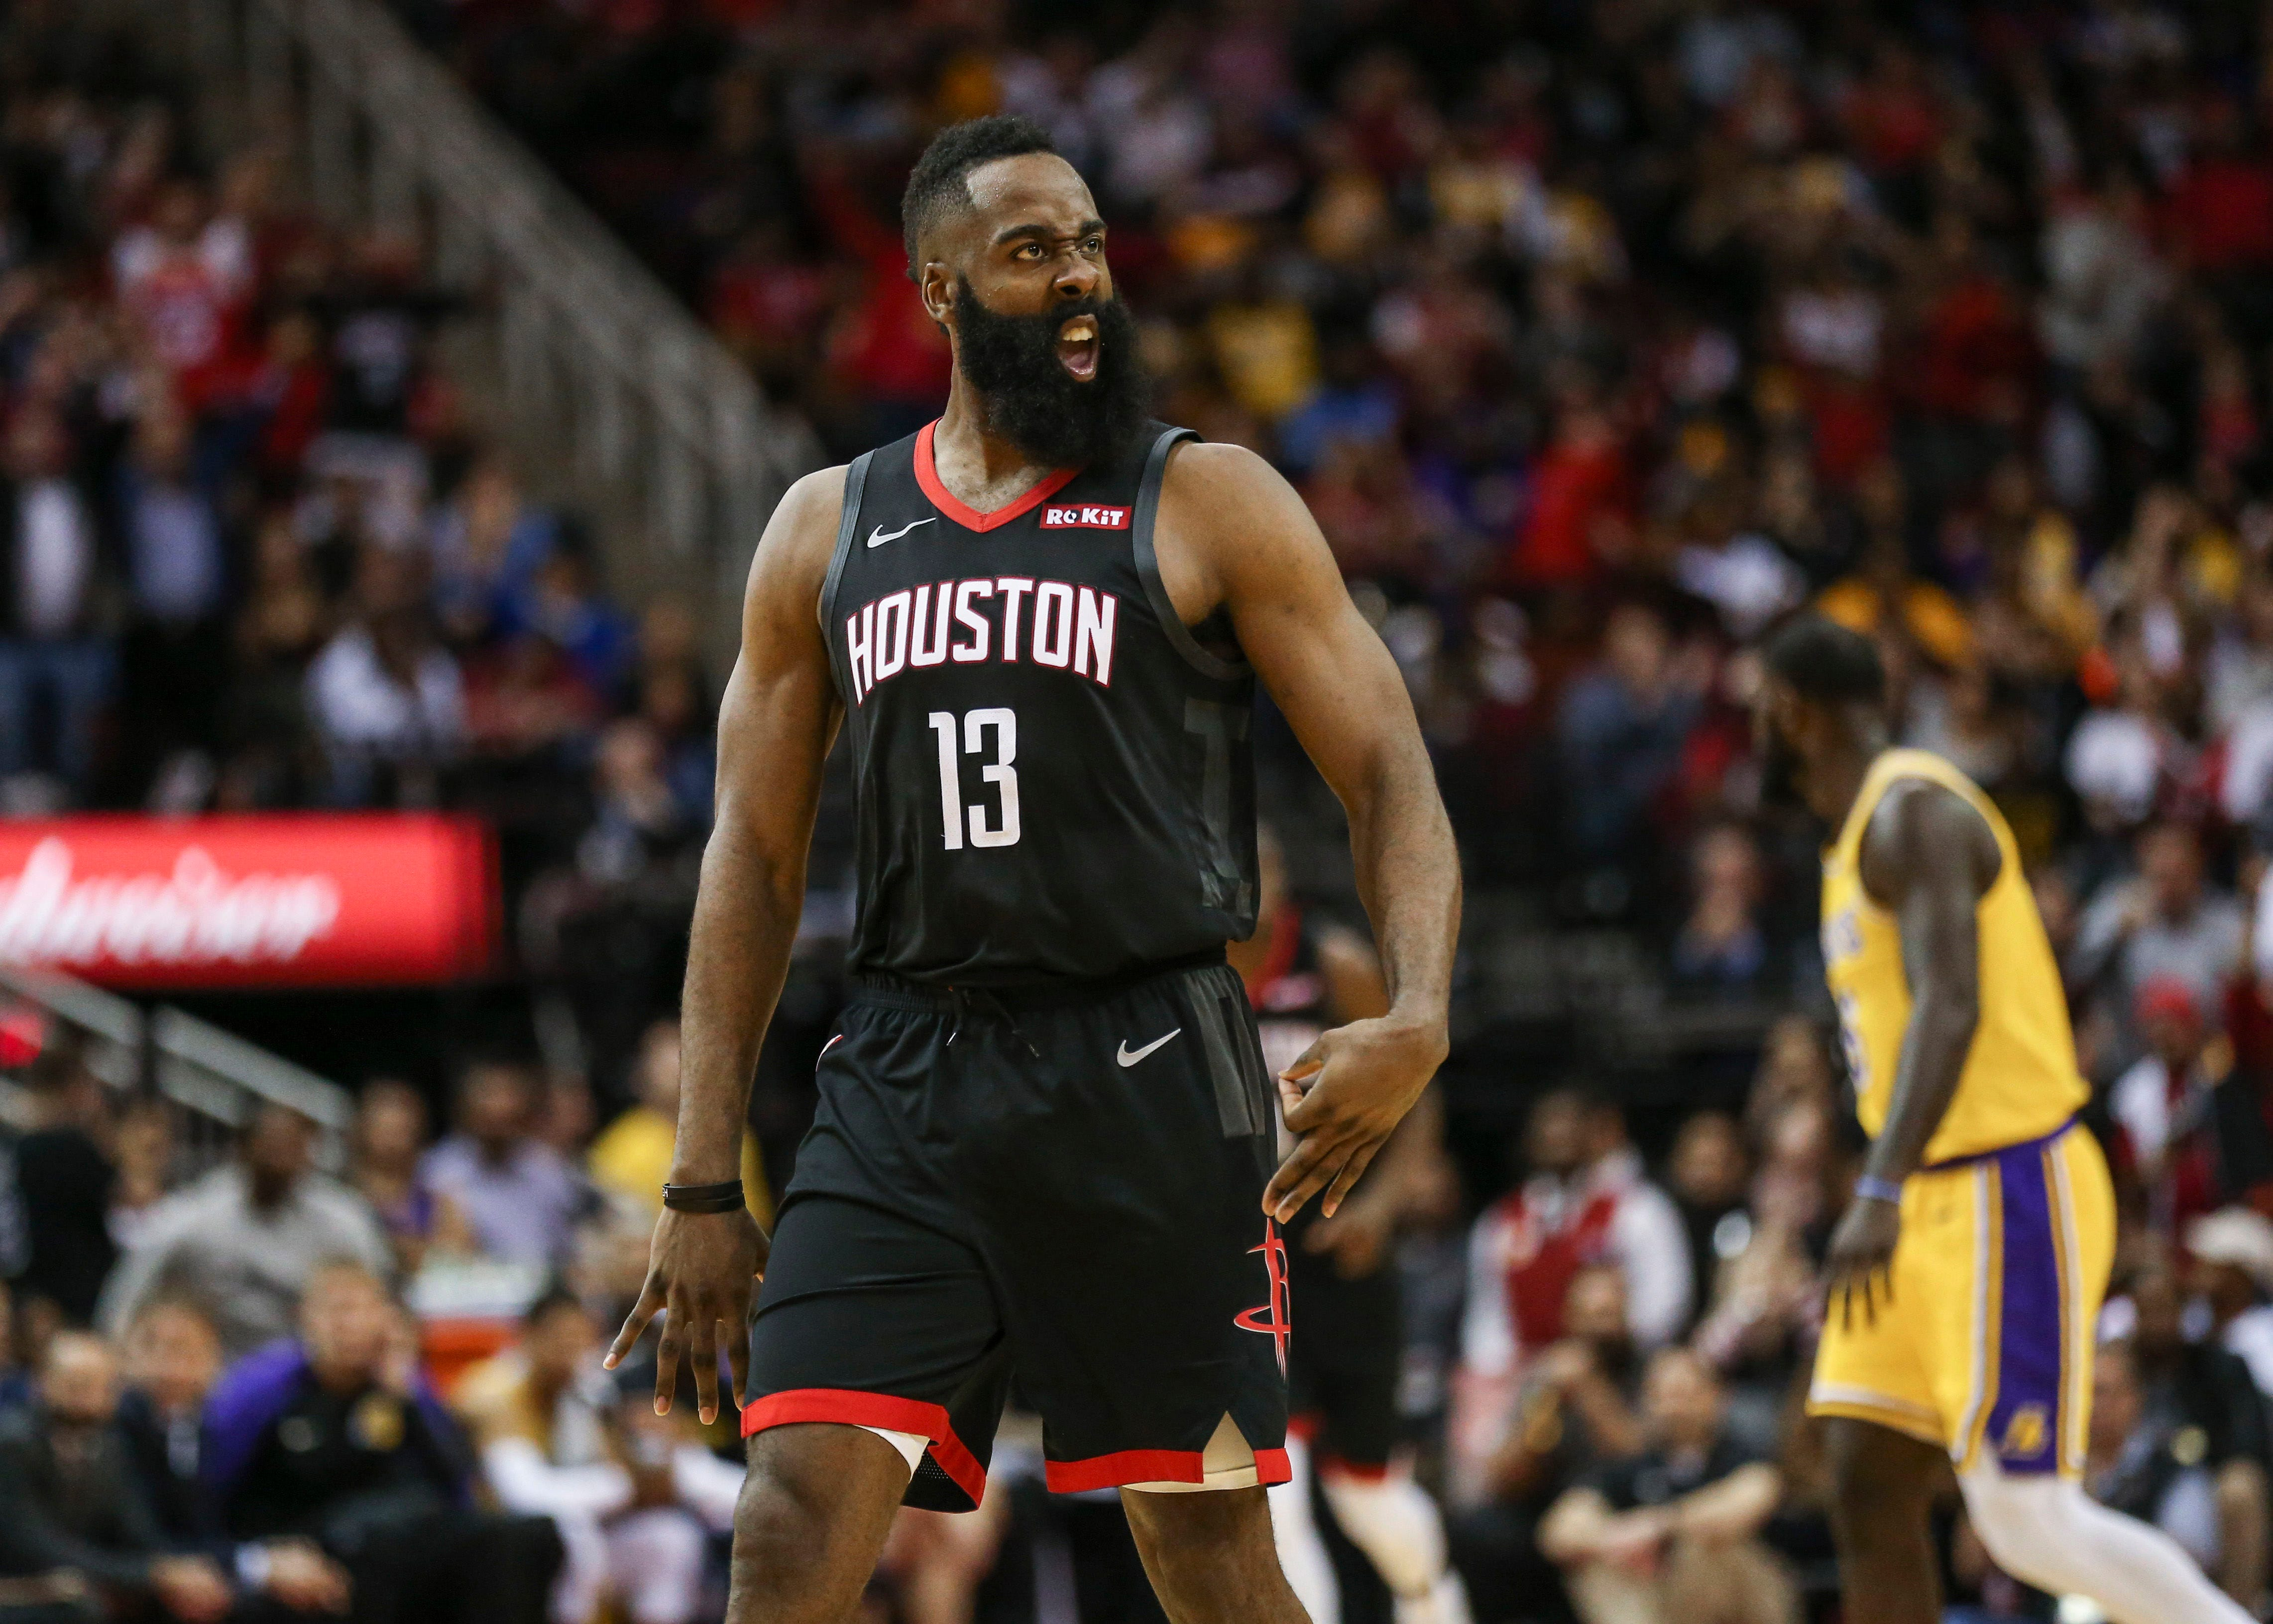 James Harden's historic scoring streak: Inside the eye-popping numbers